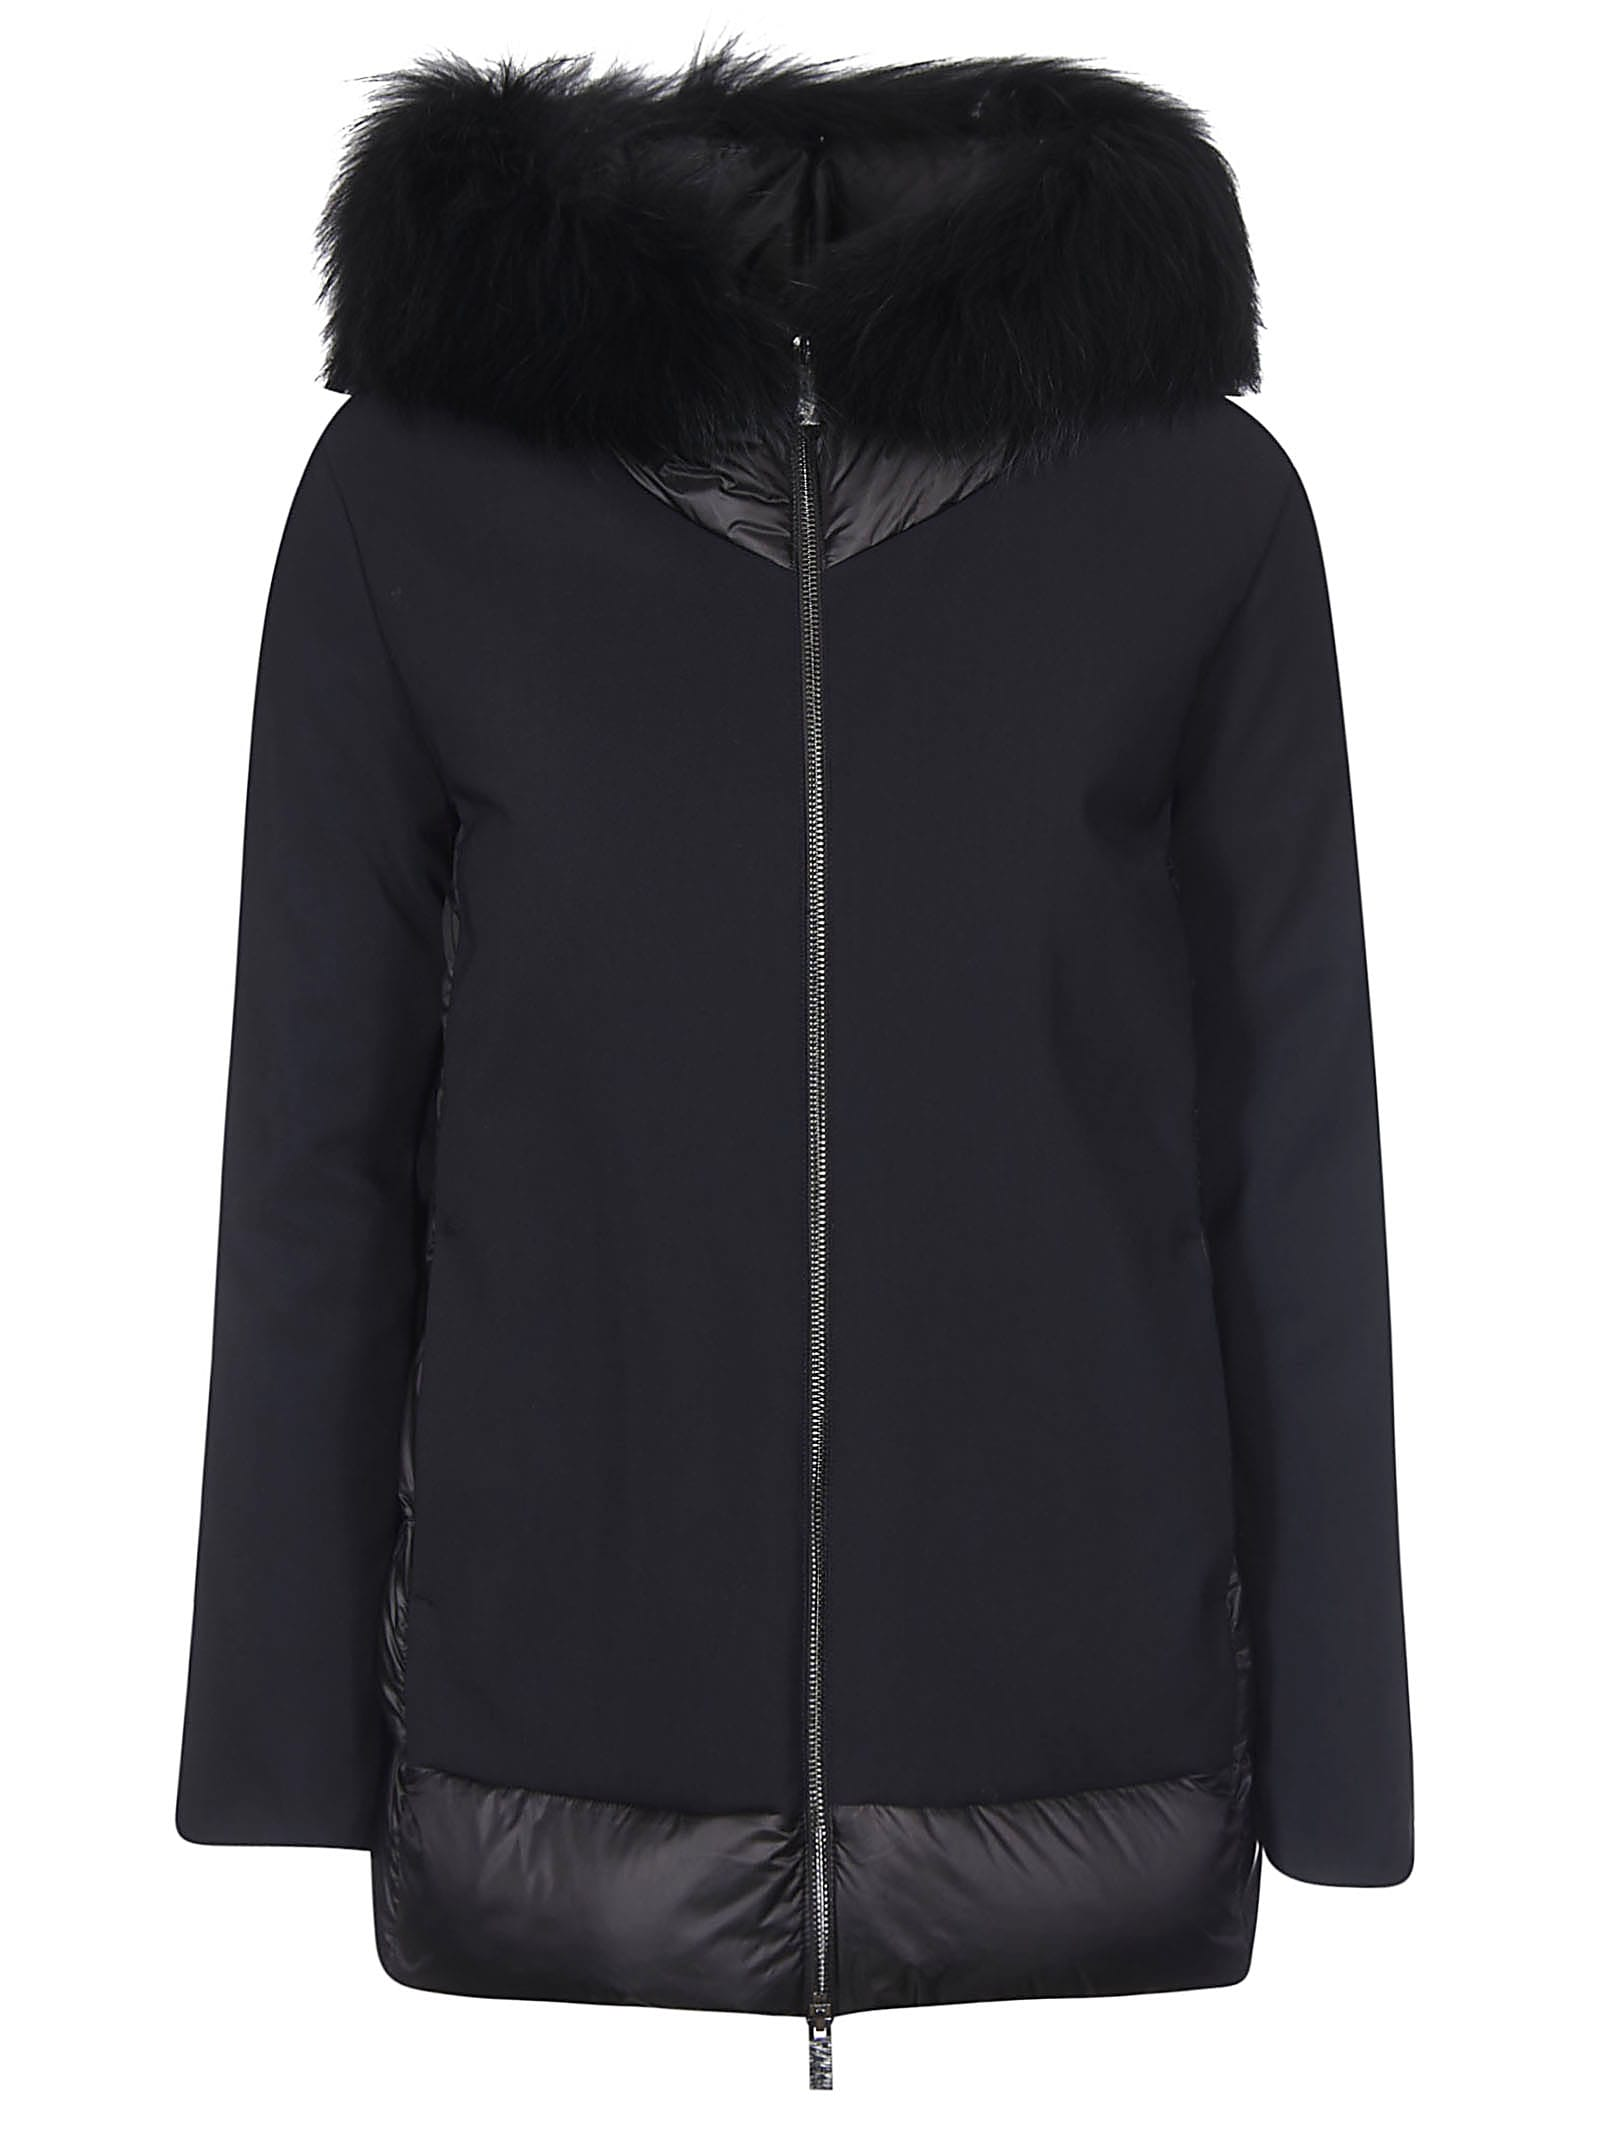 RRD - Roberto Ricci Design Back Padded Detail Furred Hood Jacket